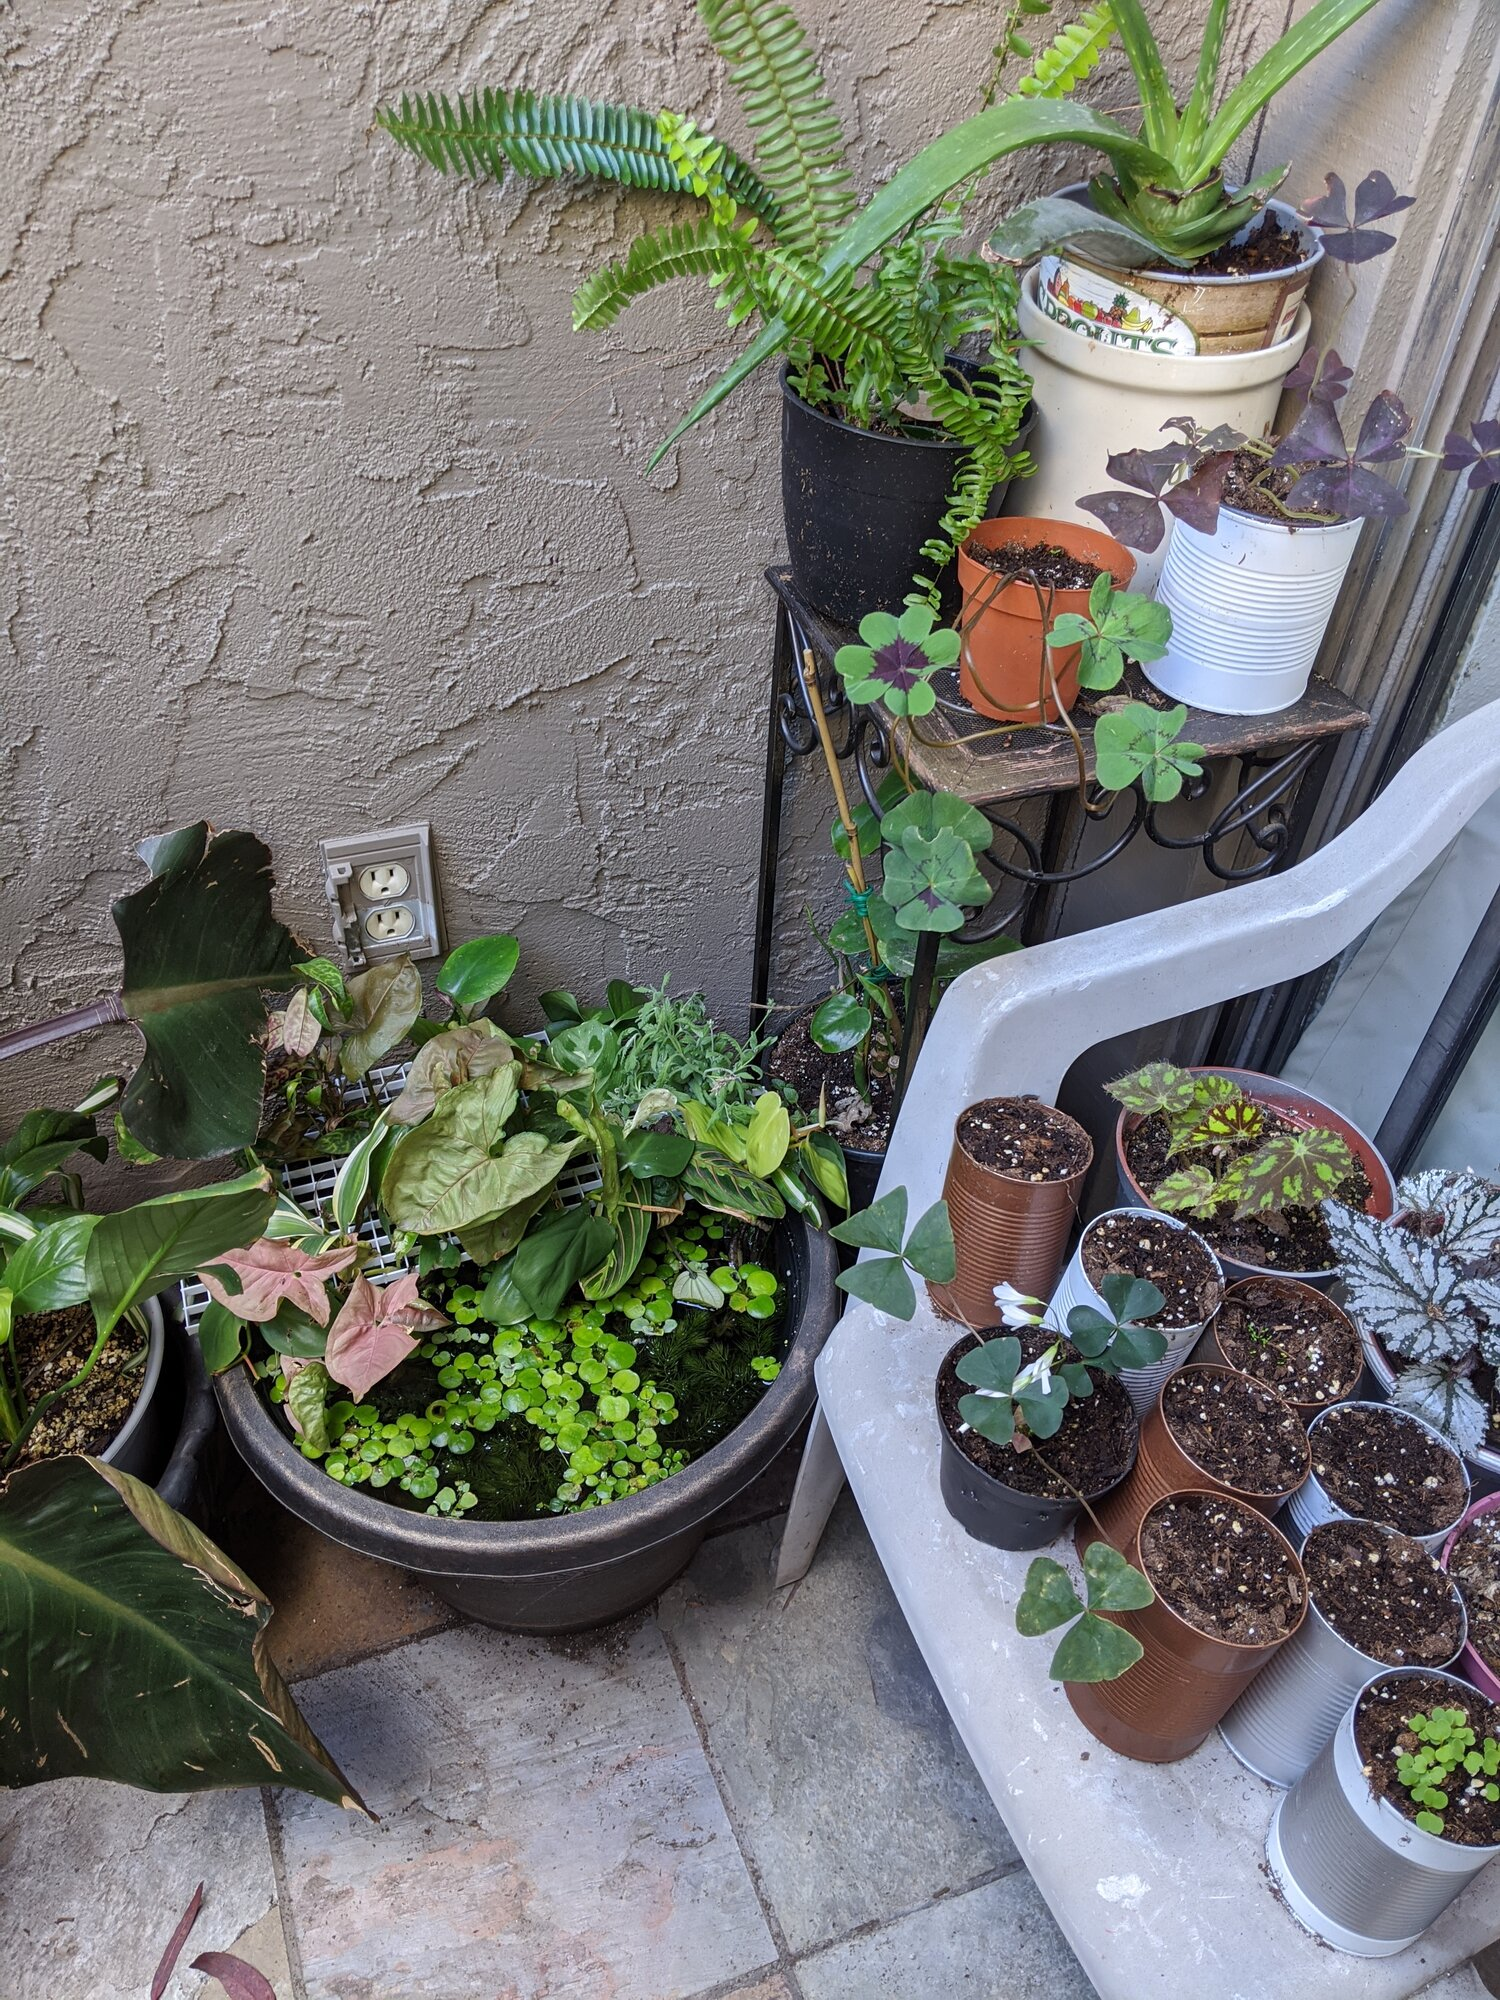 My little patio pond, with aquatic plants, minnows and tropical plant cuttings!